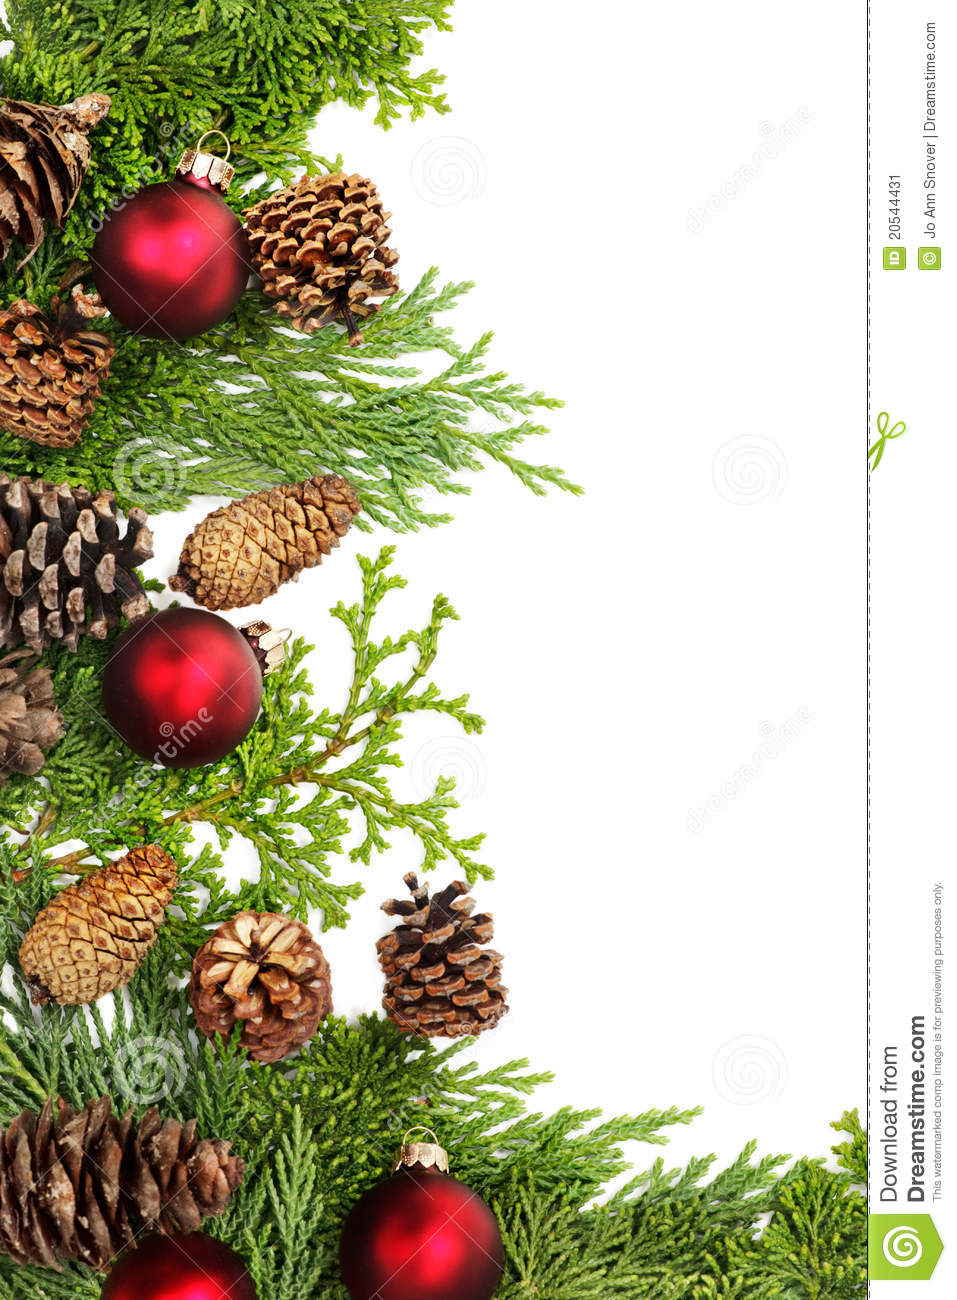 Purple and gold christmas tree decorations - Christmas Foliage Decorations Border Stock Image Image